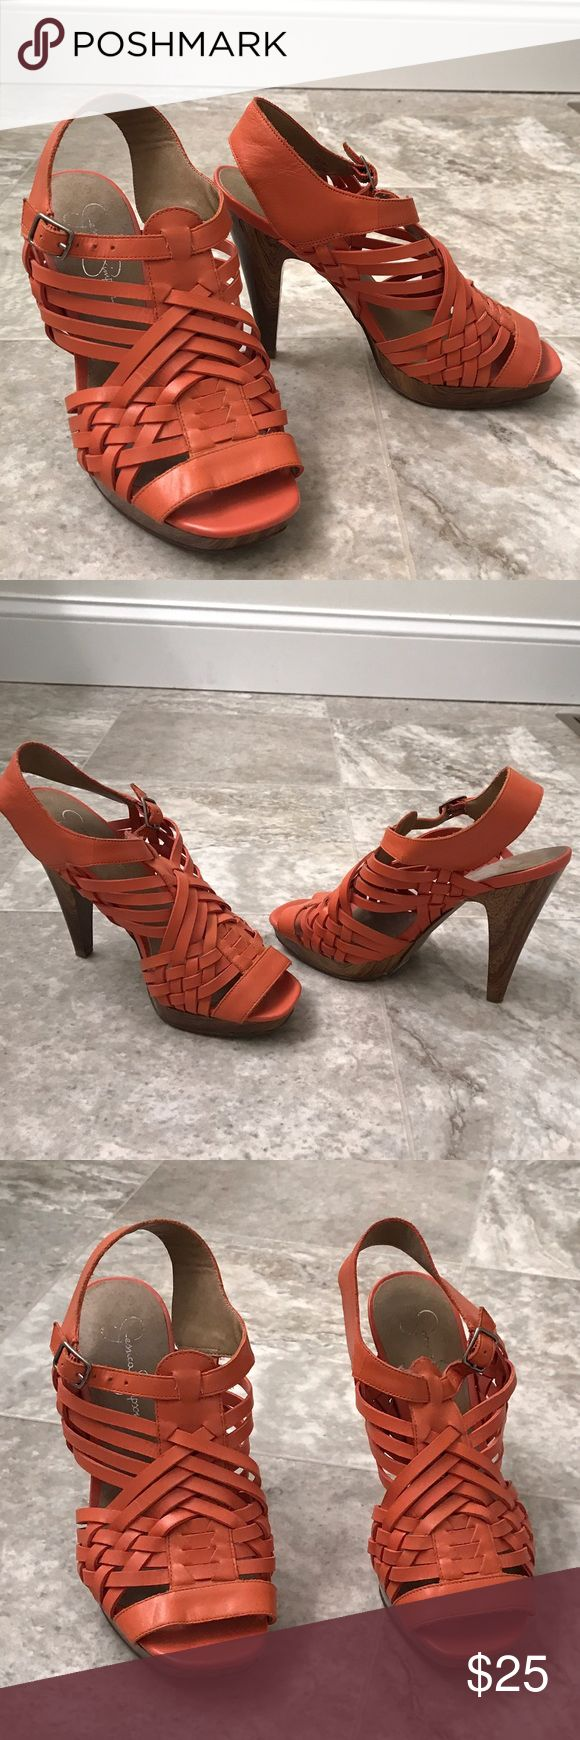 Jessica Simpson Wooden Sandal Stand out from the rest in this eye catching color! Worn only twice! Still in great shape! Jessica Simpson Shoes Sandals